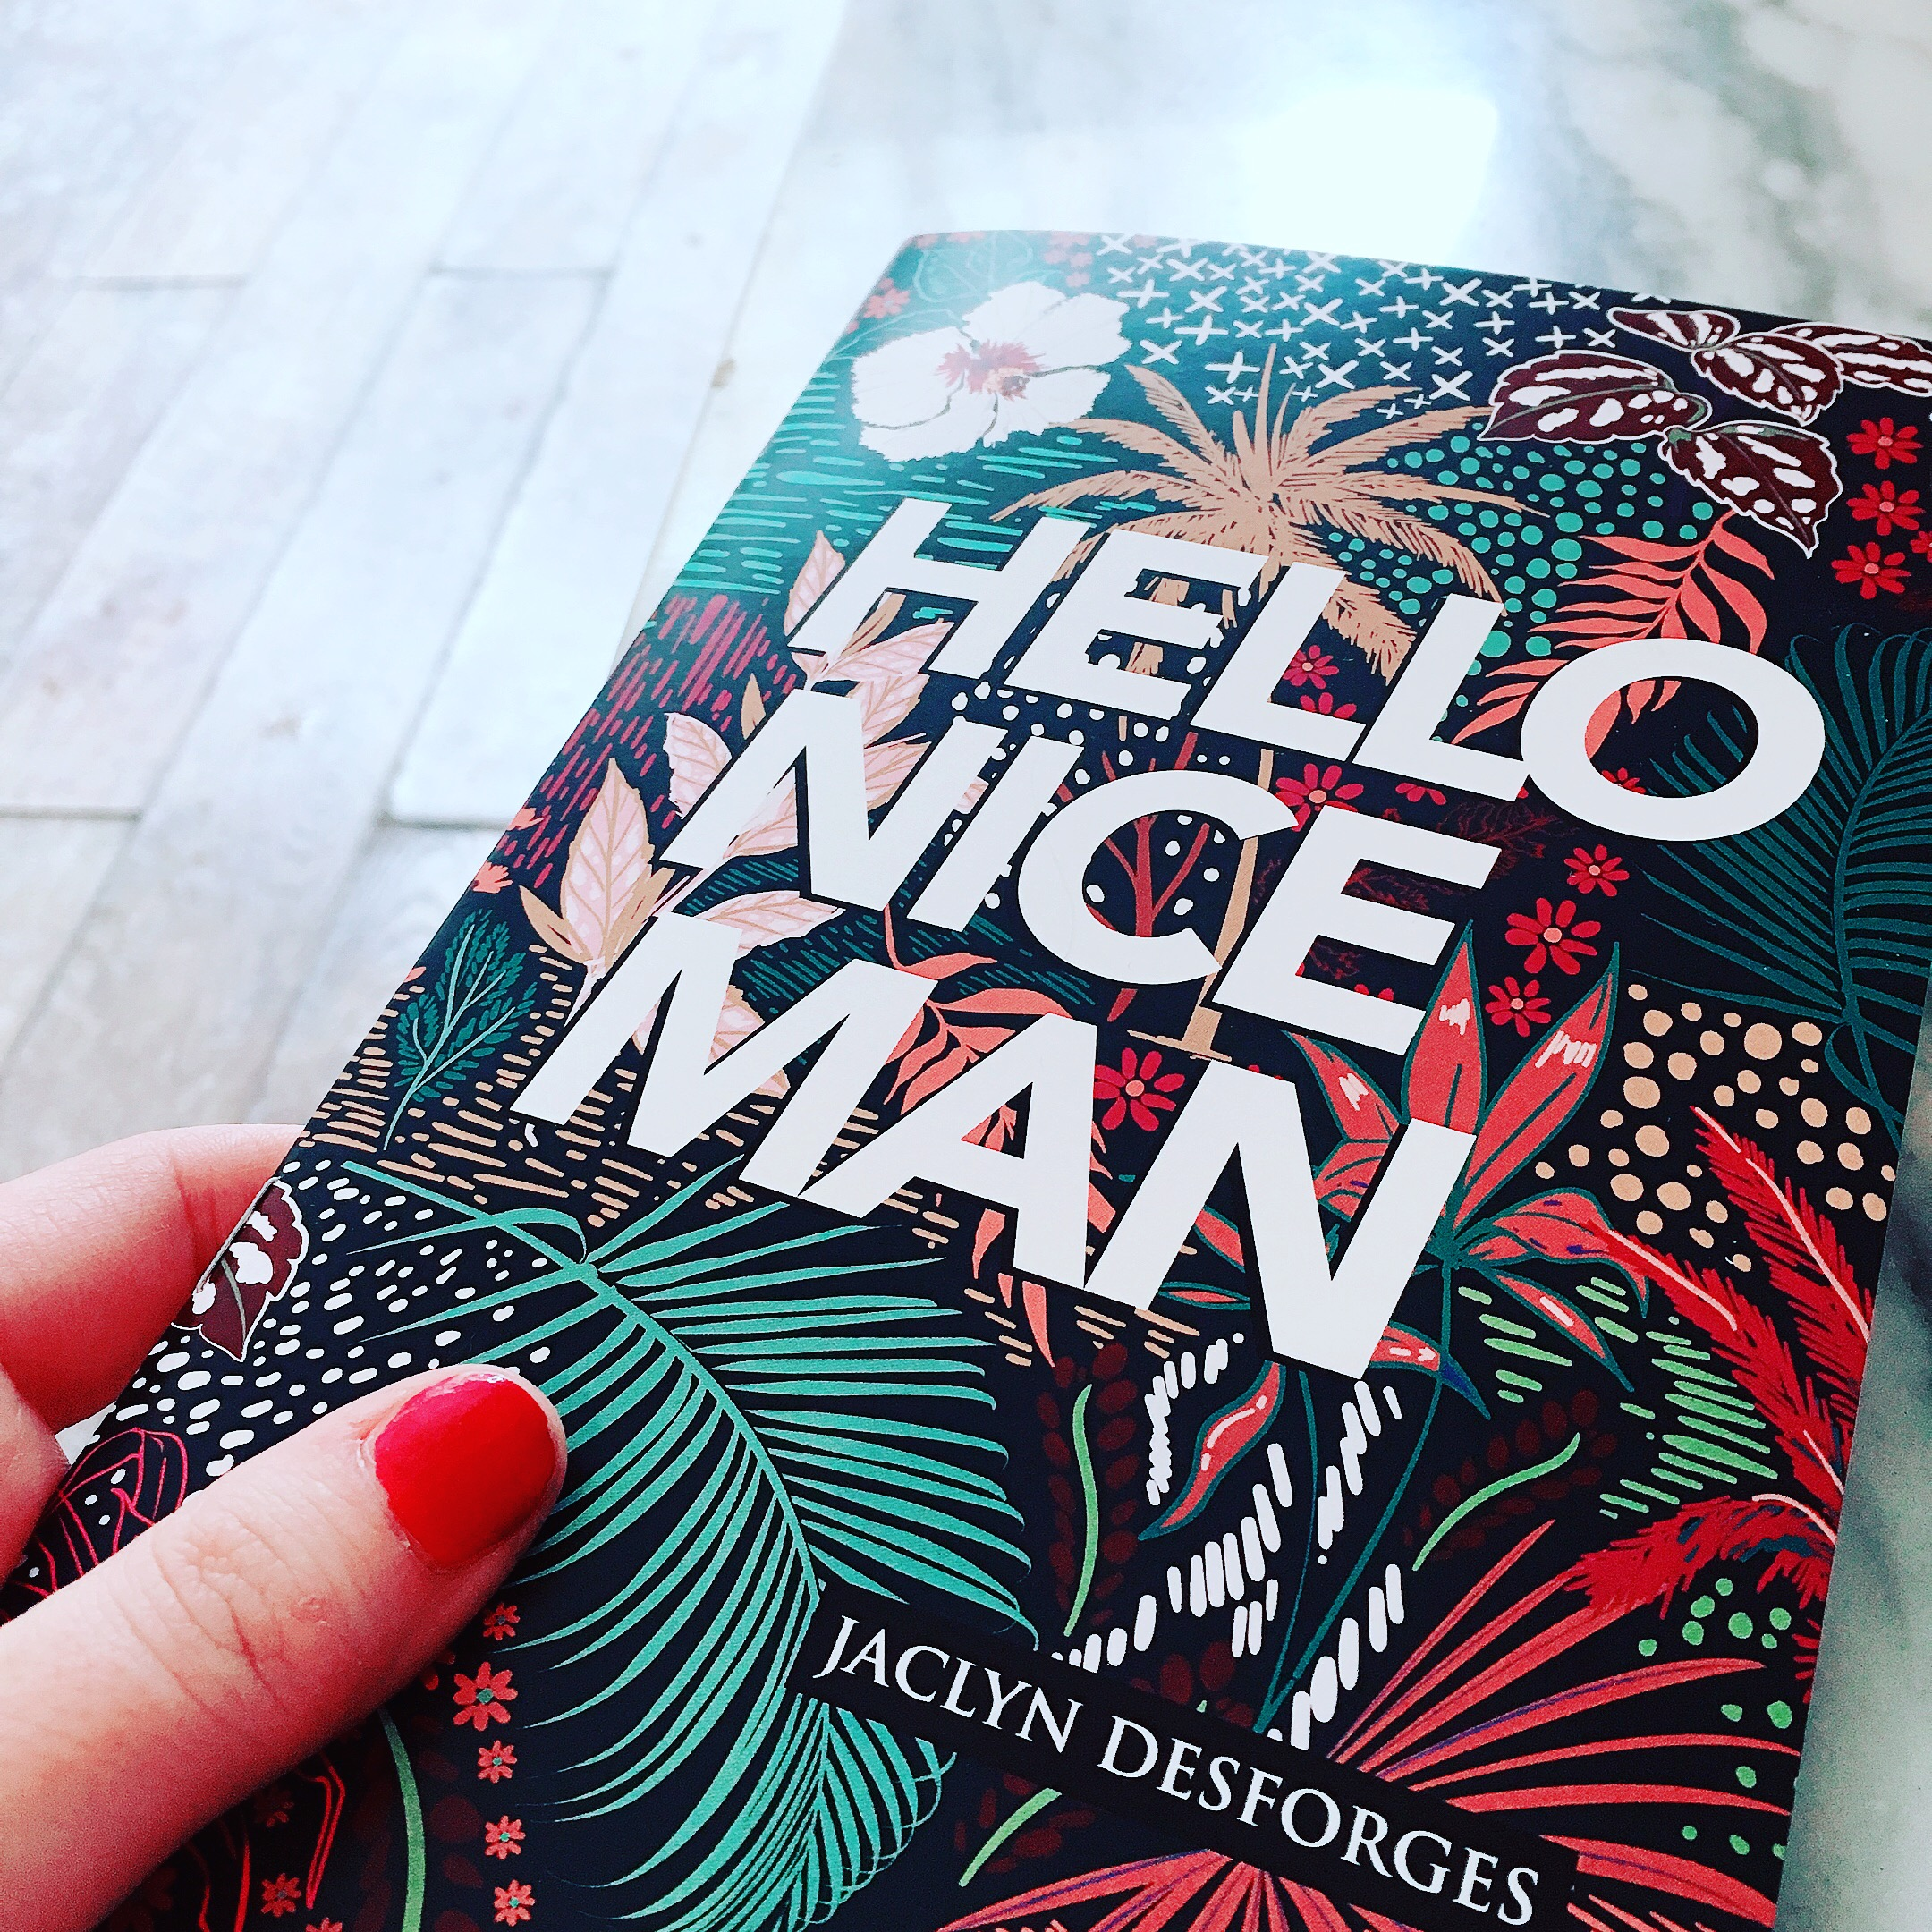 Hello Nice Man is a poetry chapbook published by Anstruther Press. It's currently in its fourth printing. You can  buy a copy online here . IRL, you can find it at  King West Books  or  The Printed Word  in Hamilton, or in Toronto at  Knife Fork Book .